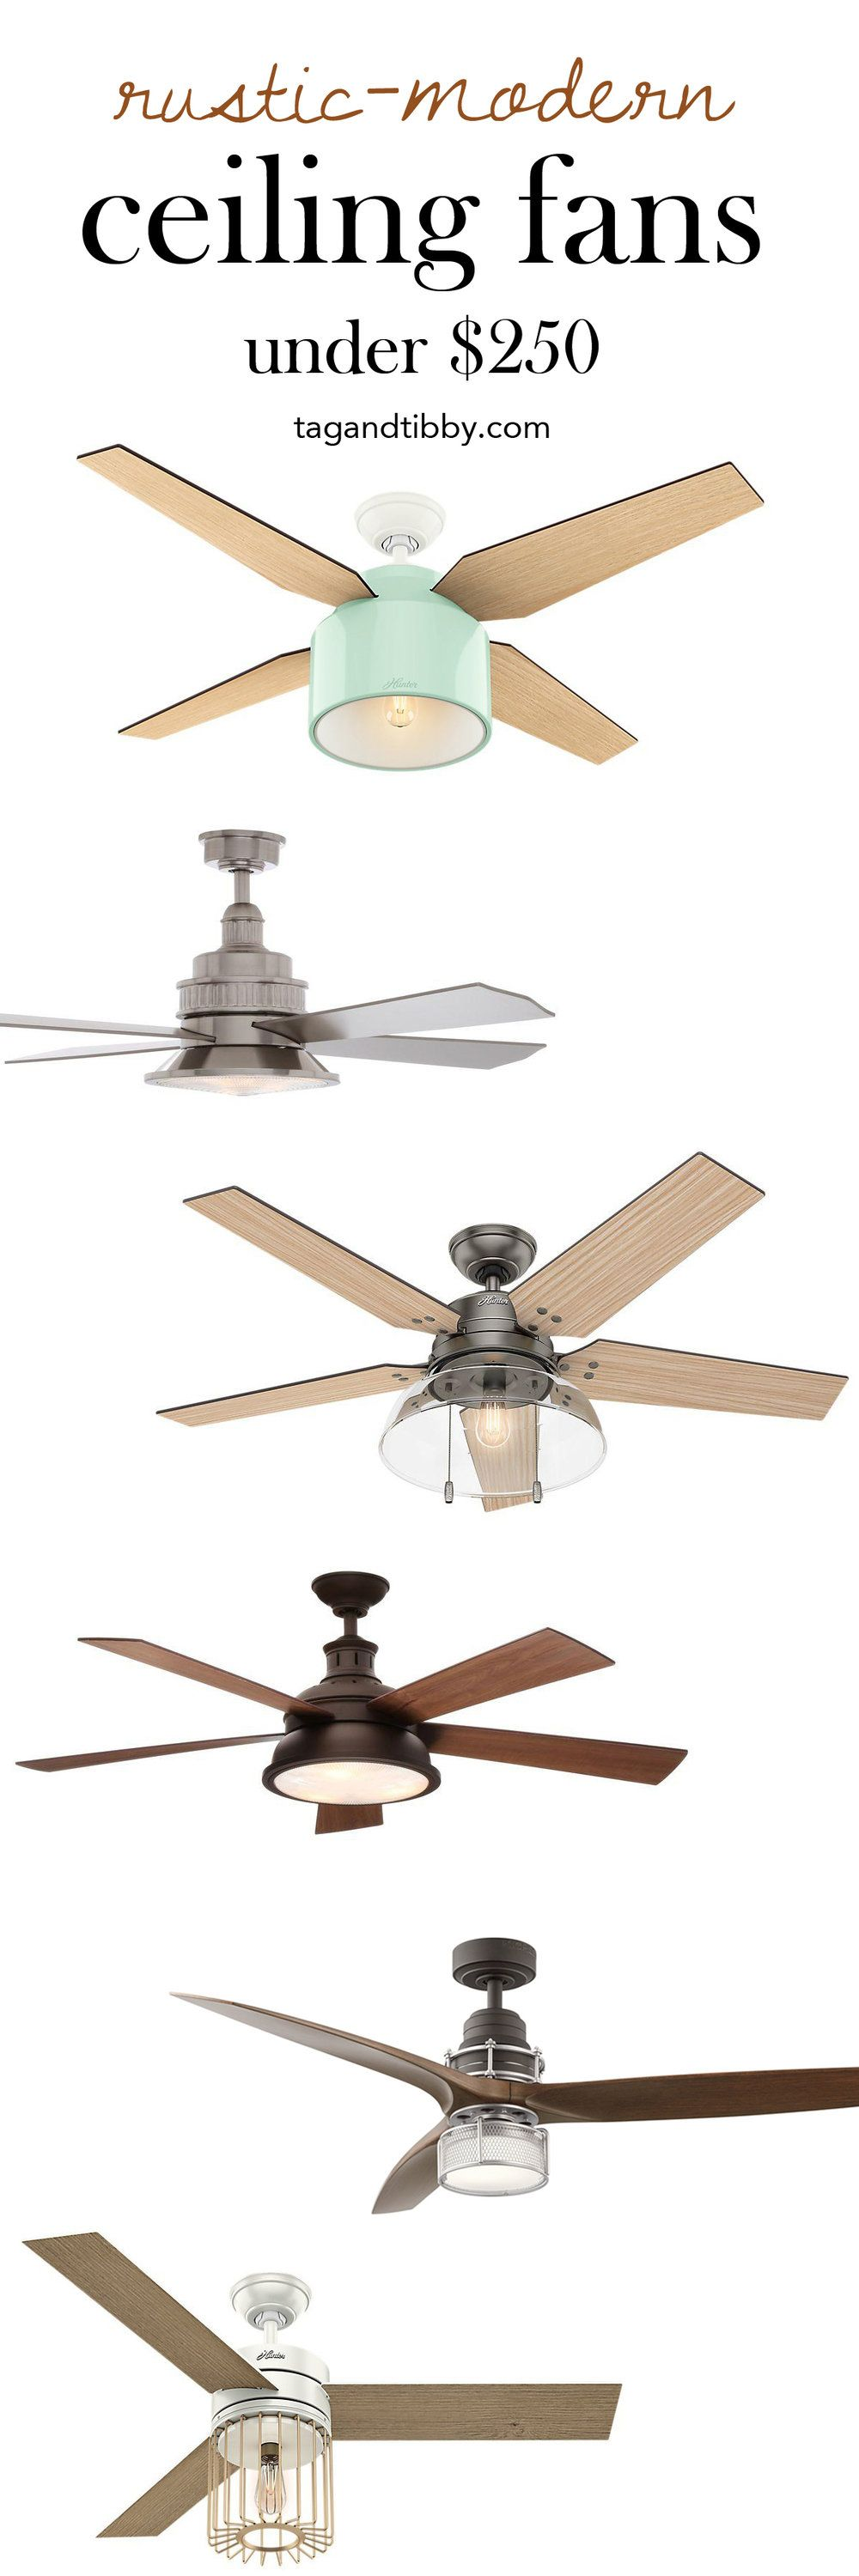 8 Modern Rustic Ceiling Fans for Under $250